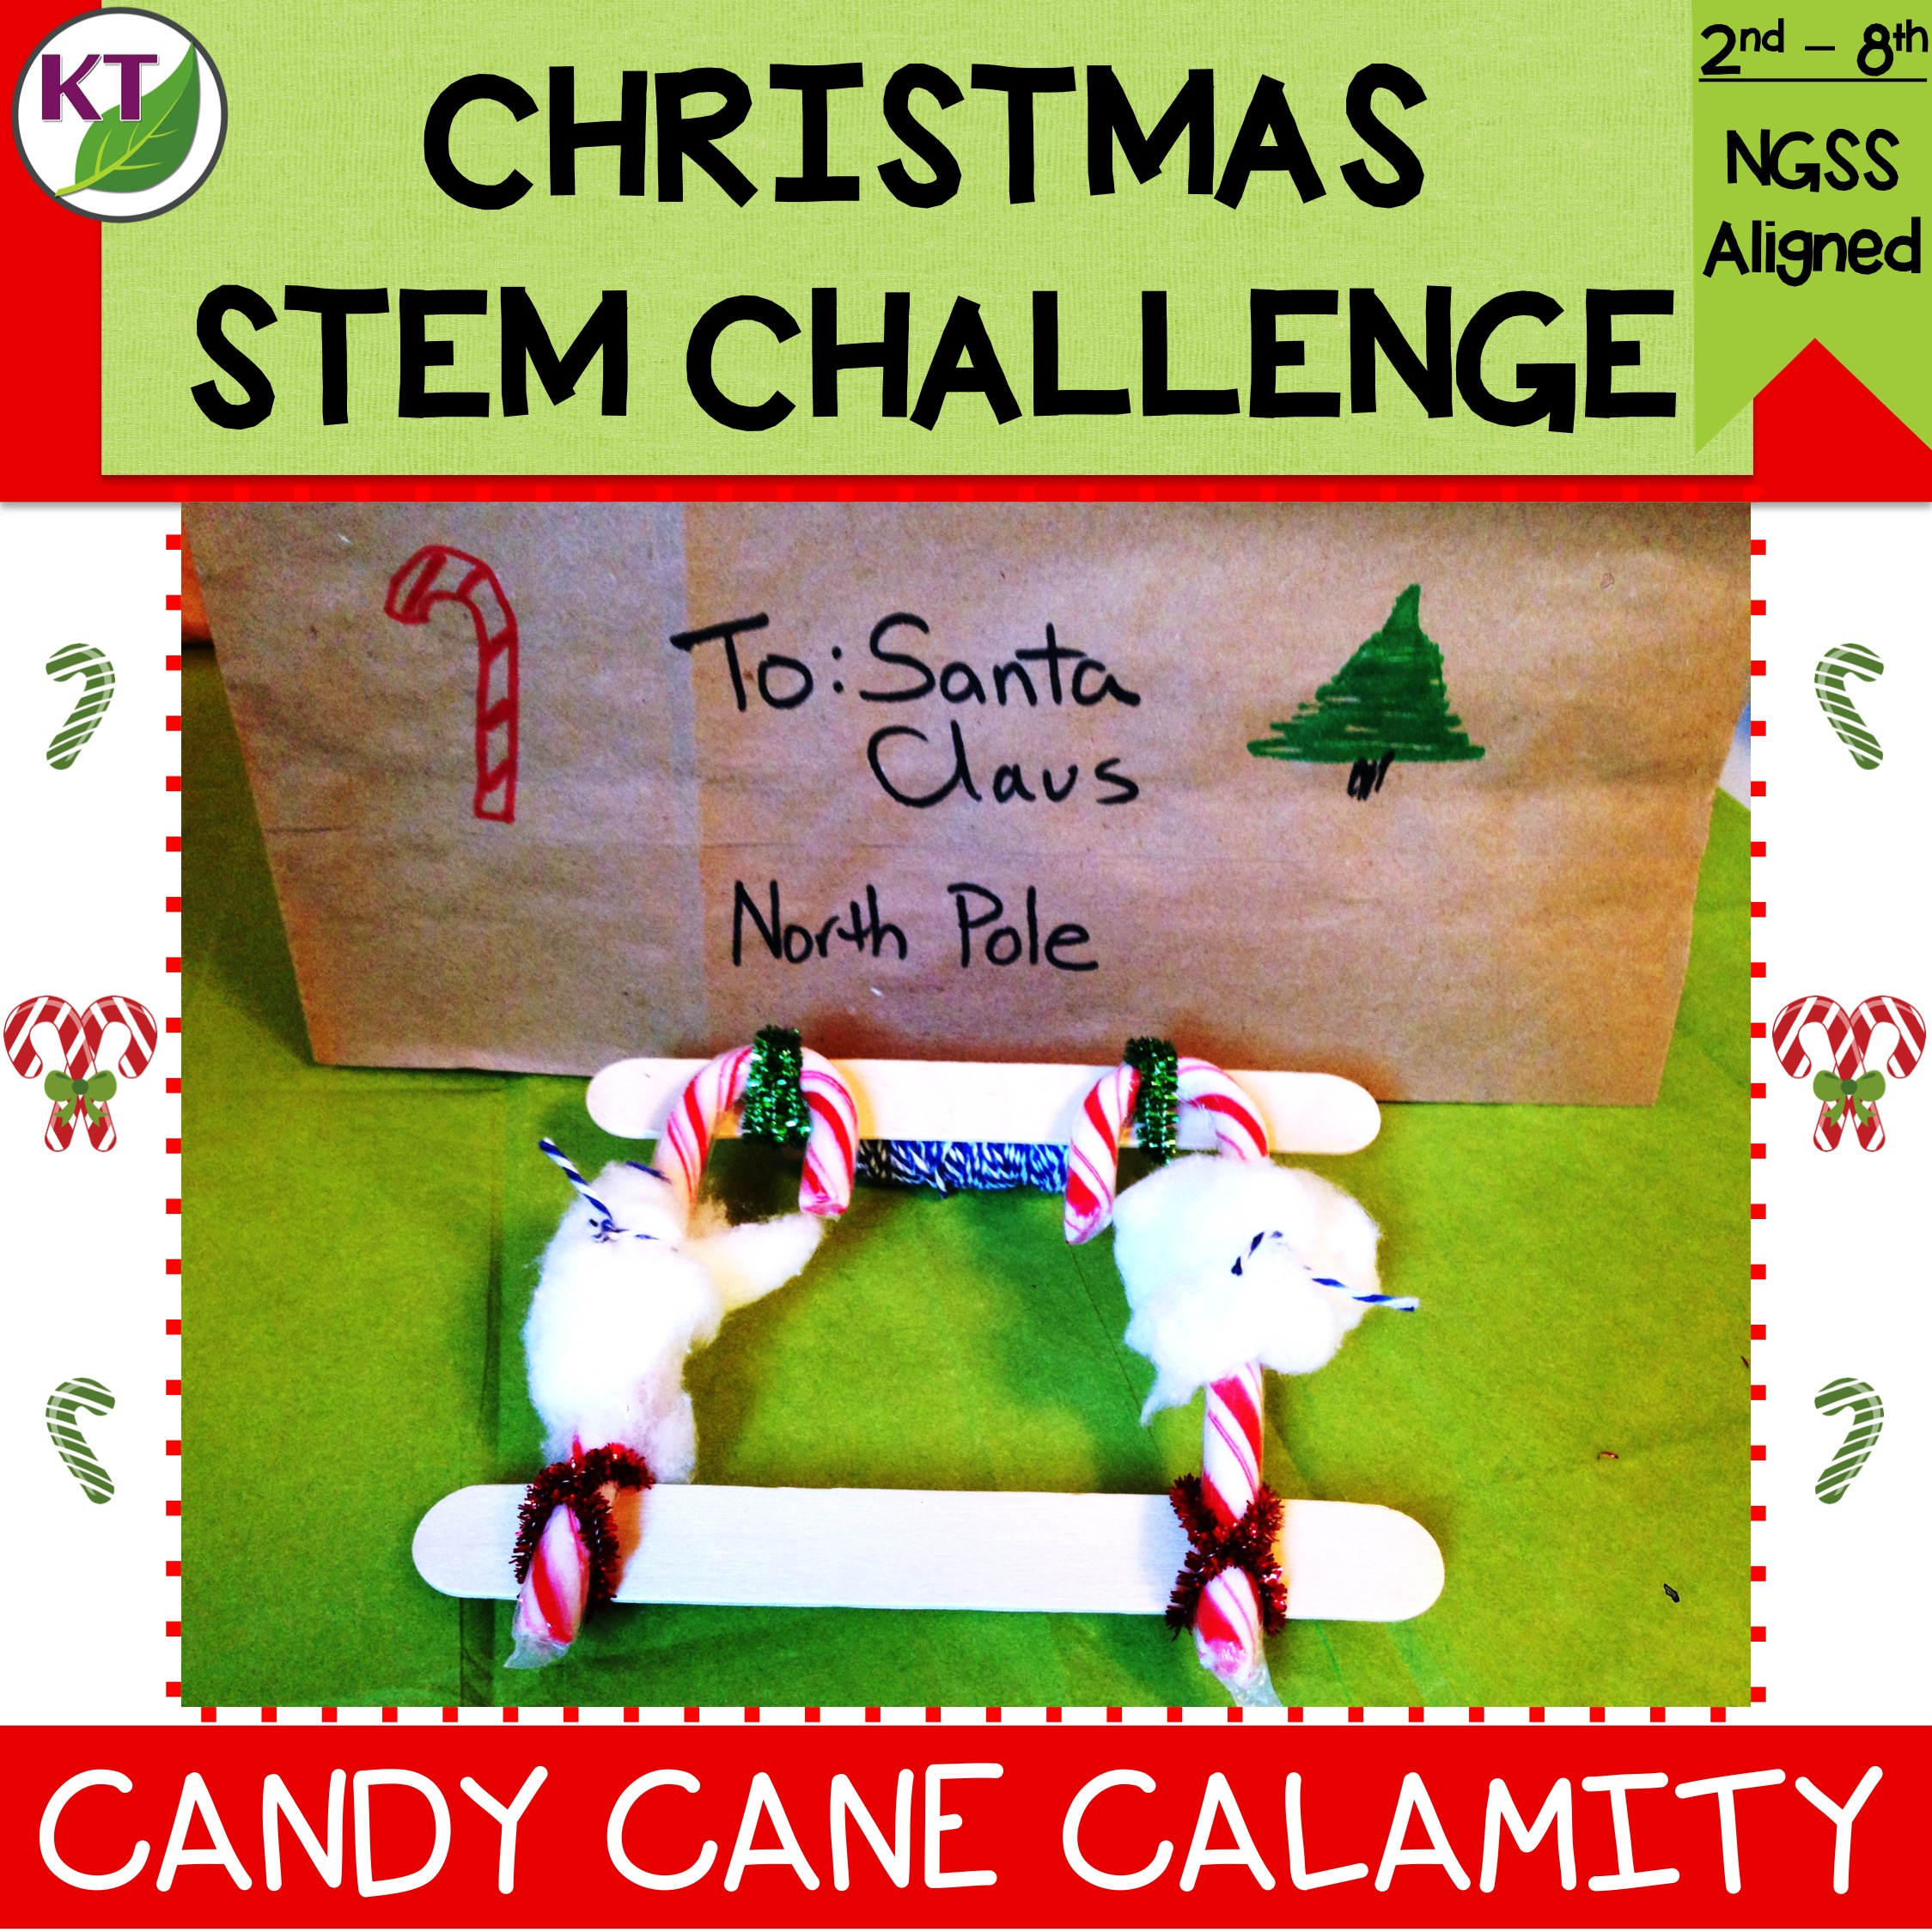 Christmas Stem Challenges.Candy Cane Calamity Christmas Stem Challenge